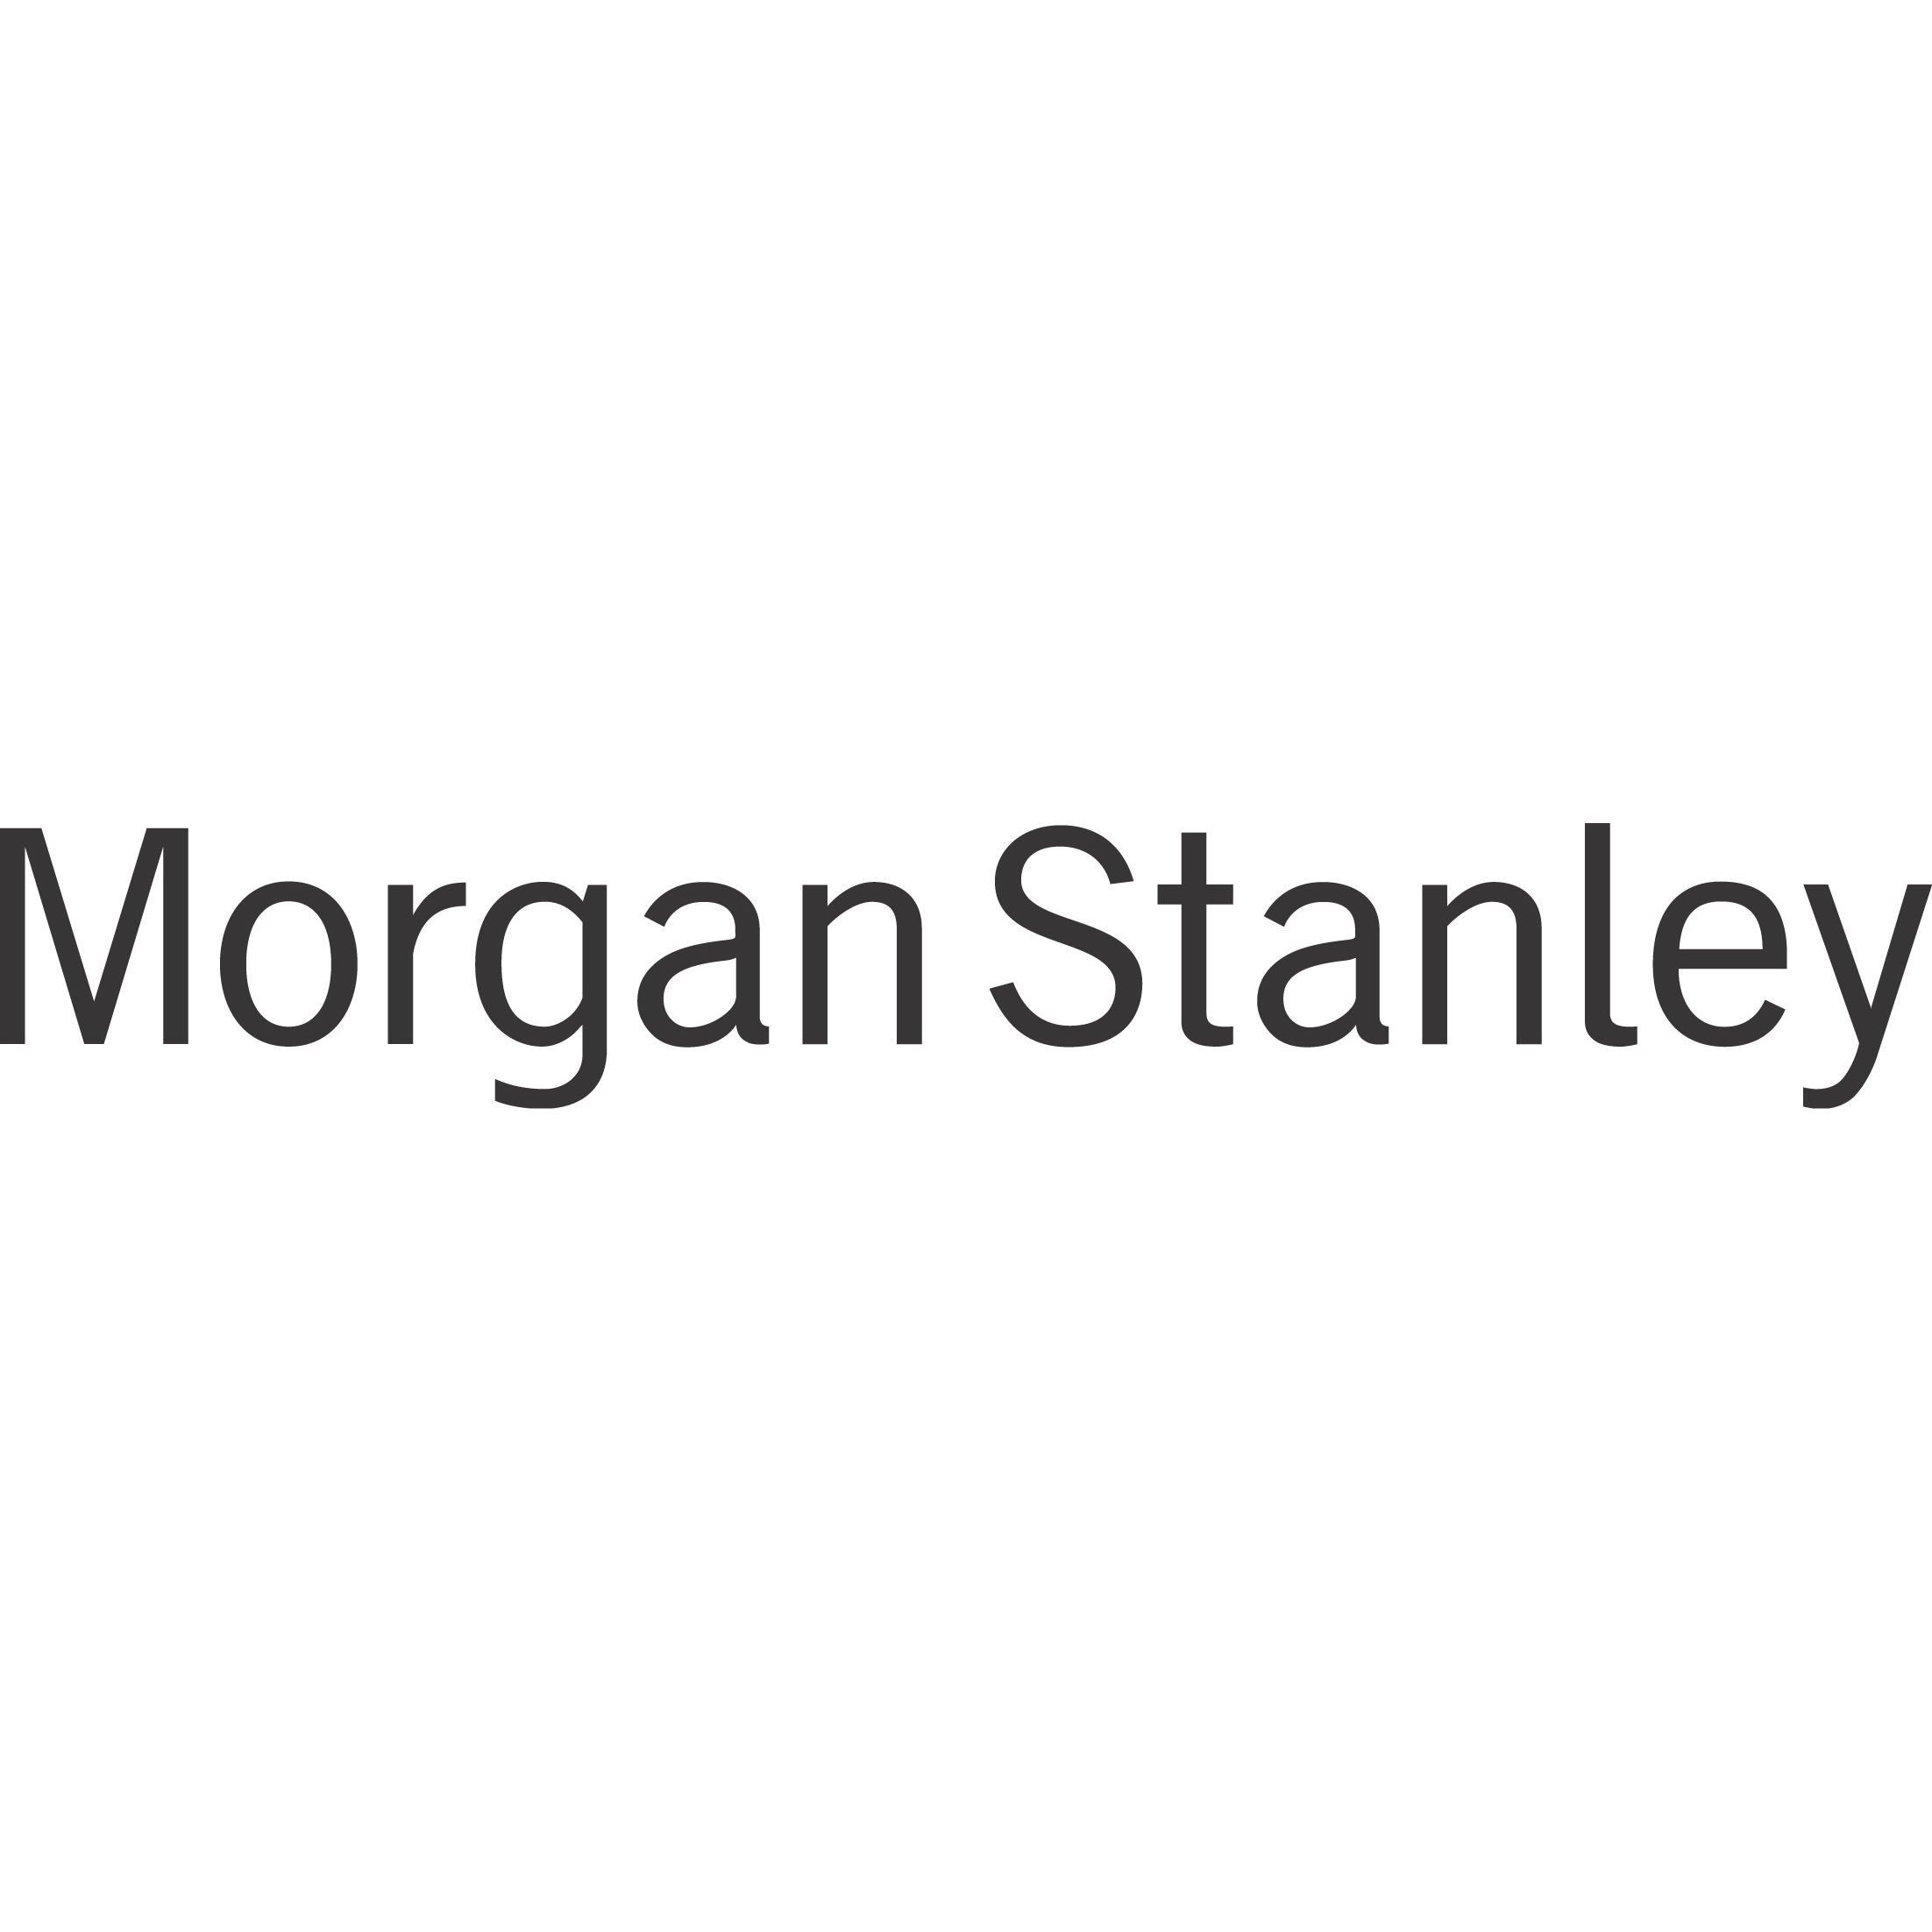 Guy William Bock - Morgan Stanley | Financial Advisor in Morristown,New Jersey